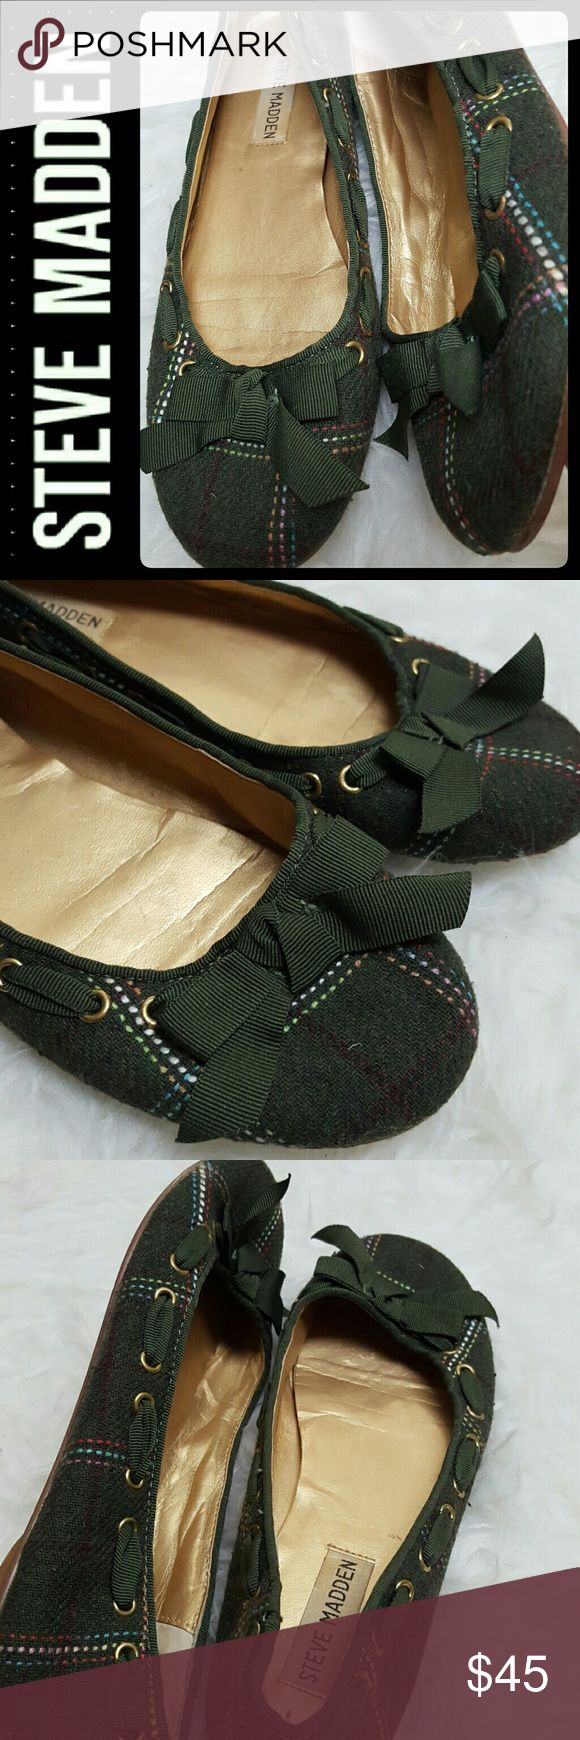 Steve Madden Bow & Lace Flats Steve Madden Signature Shoes in Adorable Bow Detail on Vamp Flats! Lacey Ribbon All Around with Fabric Upper and Leather Outsole! Size 7M, Used in Mint Condition! Steve Madden Shoes Flats & Loafers